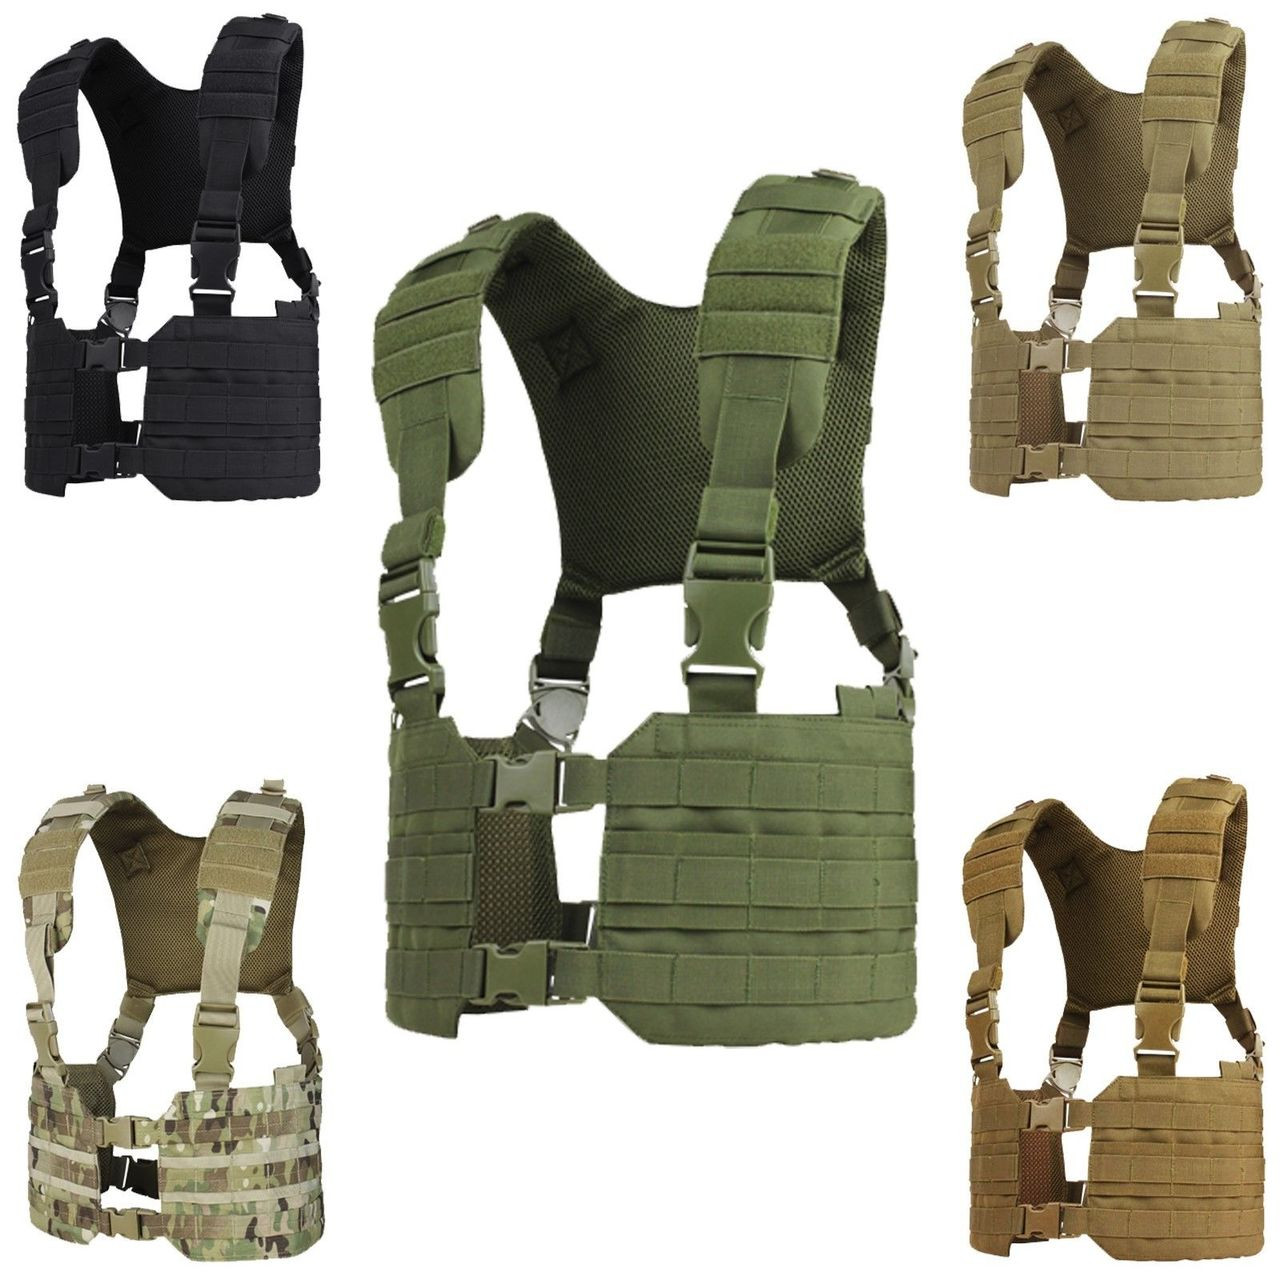 Condor MCR7 RONIN MOLLE Chest Rig Quick Release Split Padded H-Harness Vest BLK